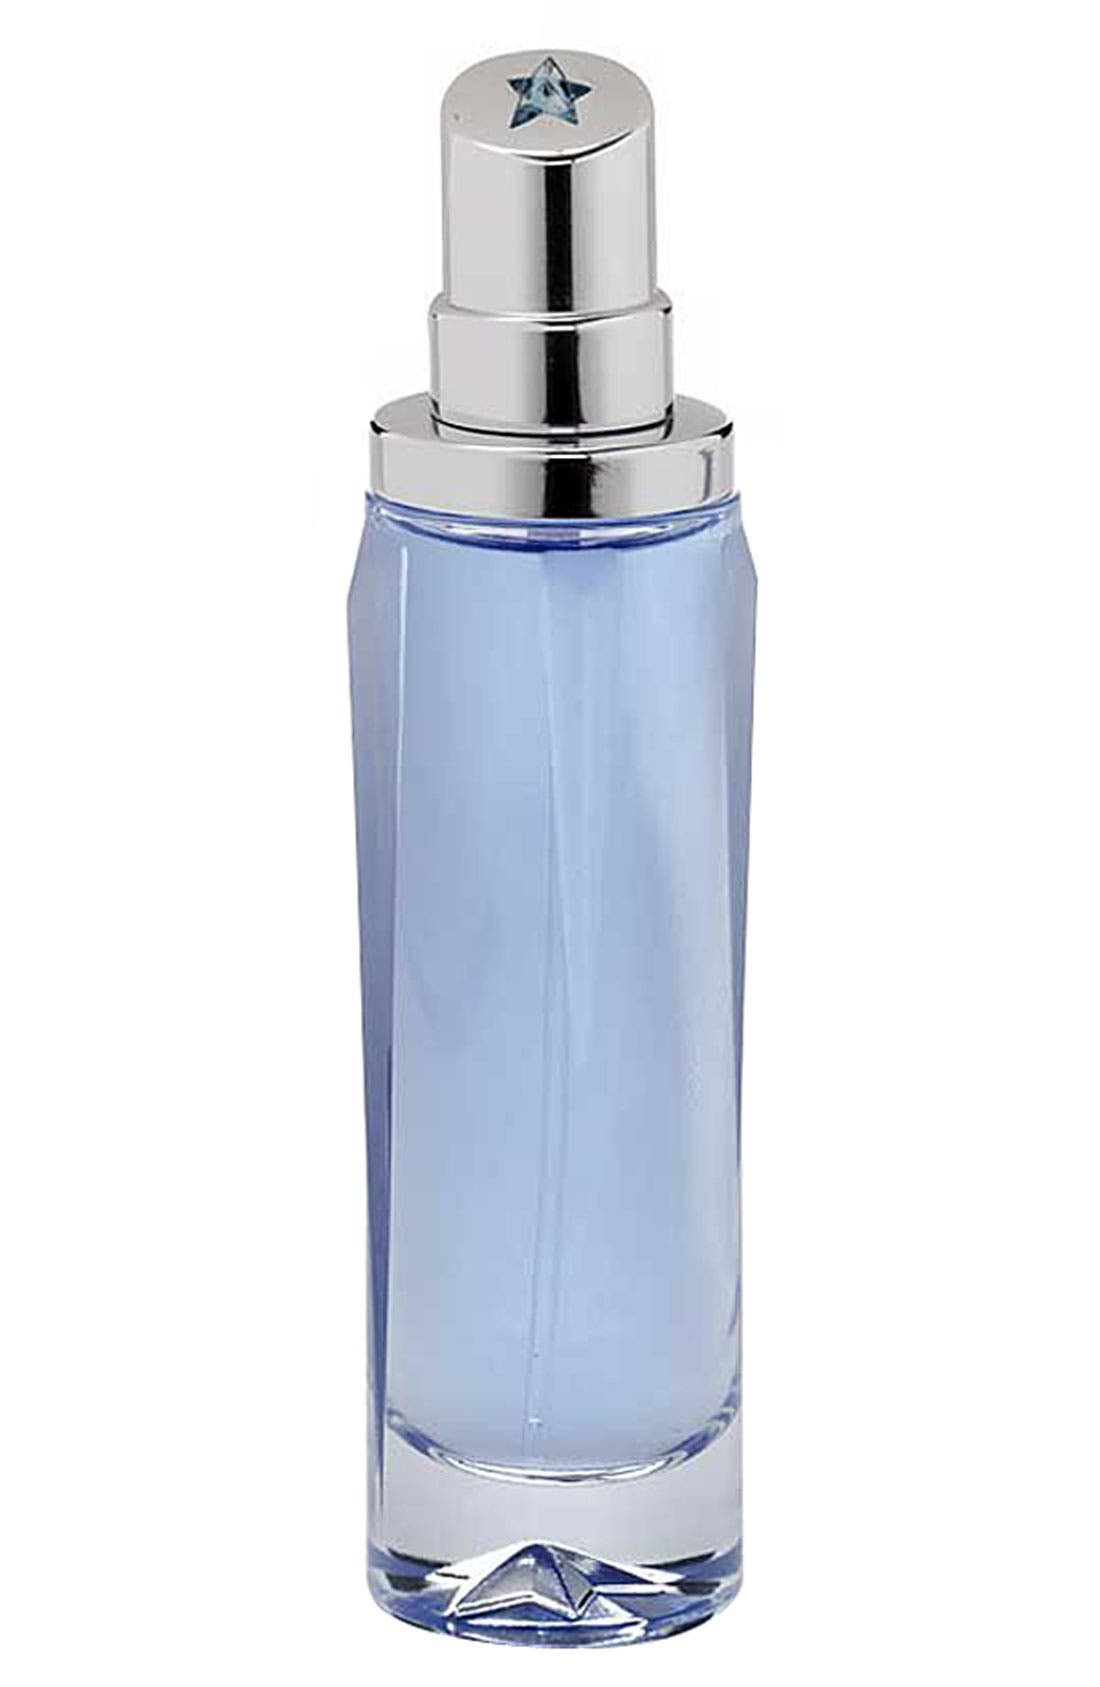 Innocent by Thierry Mugler Refillable Spray